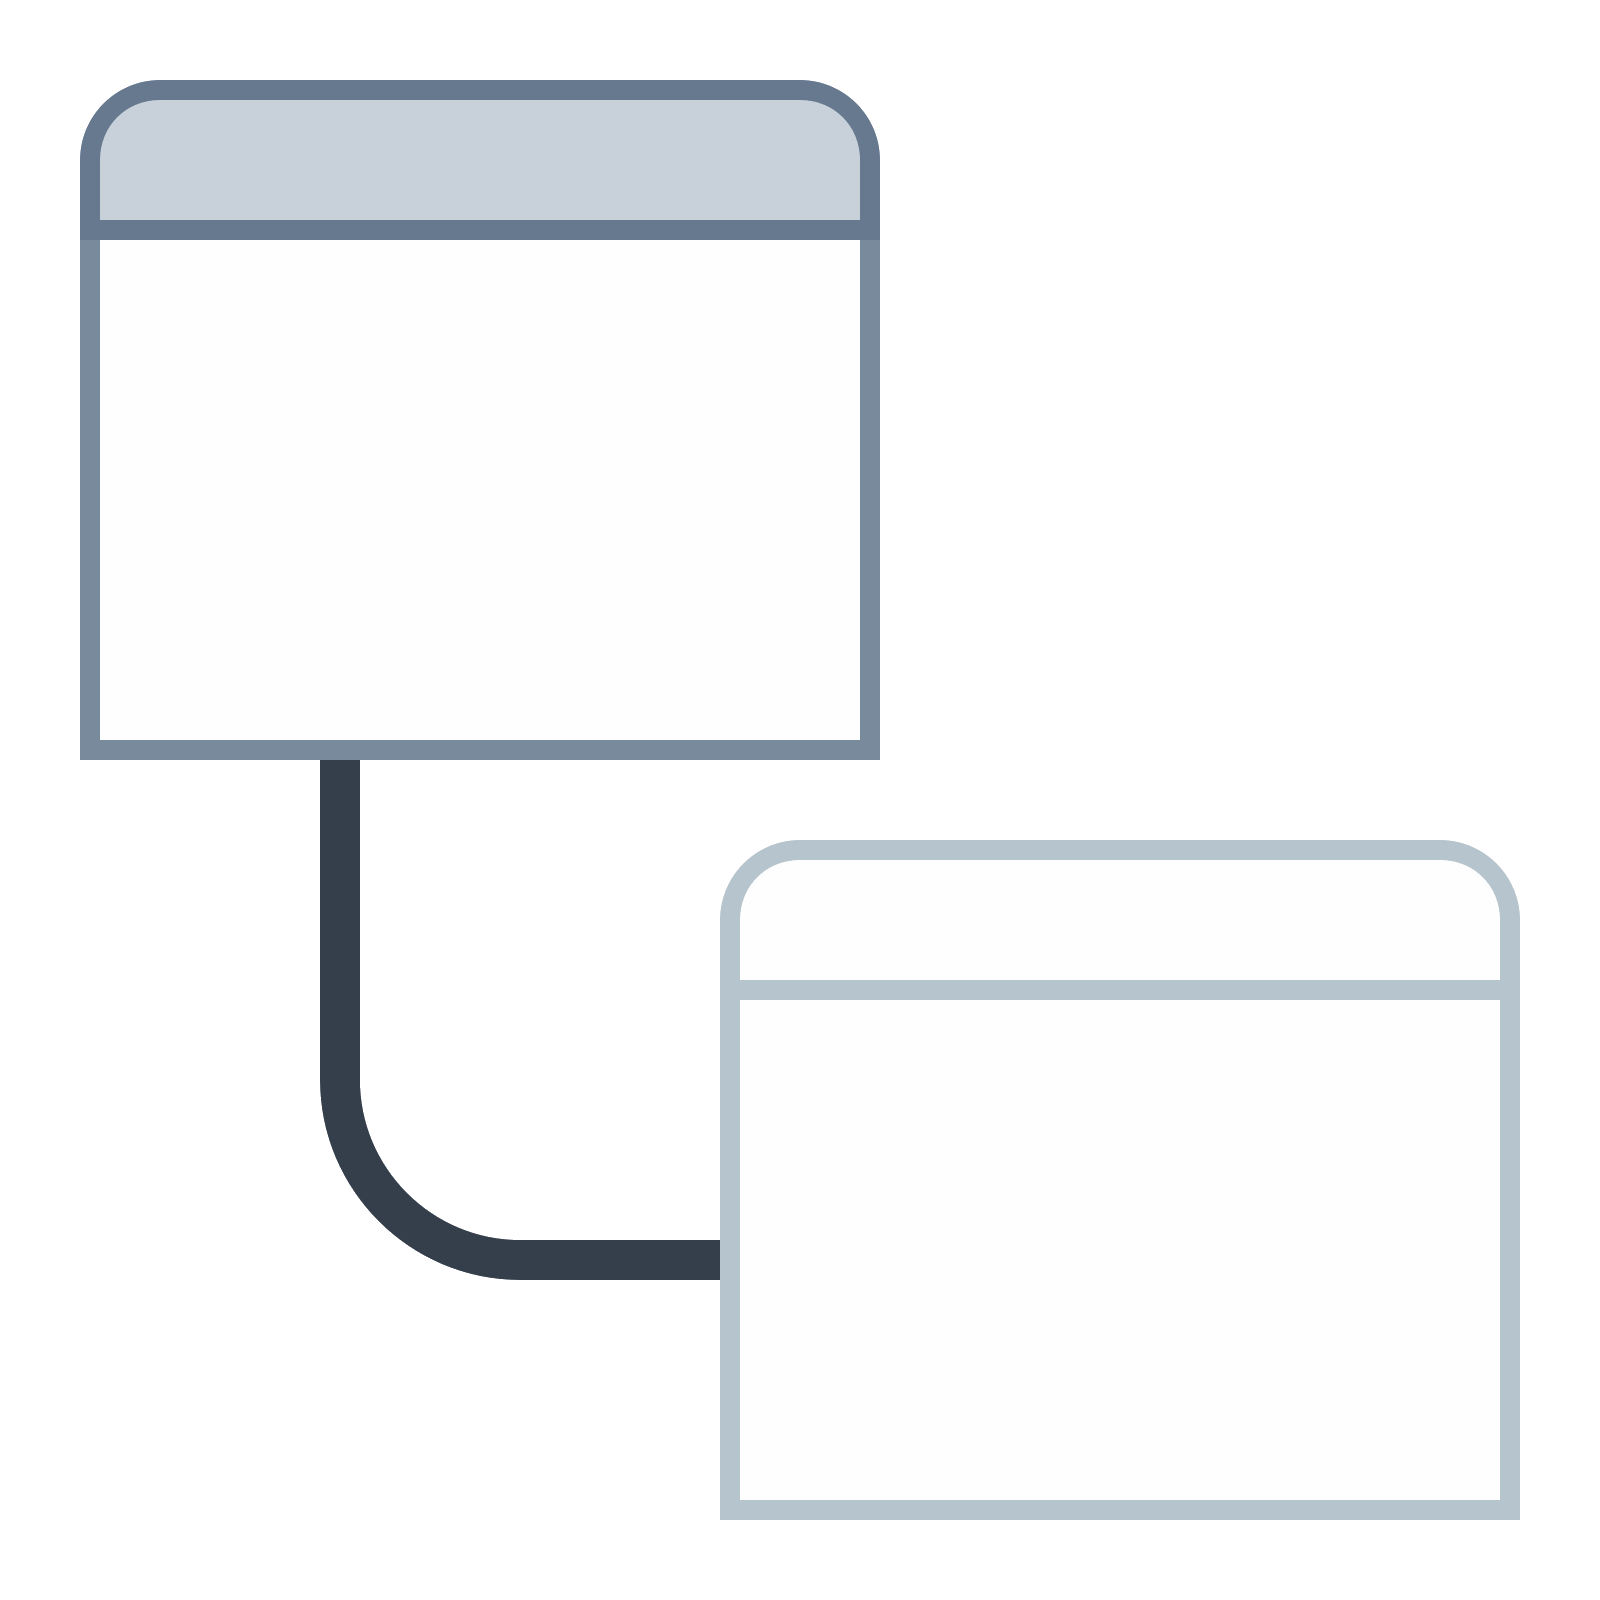 Static vector. View level icon free